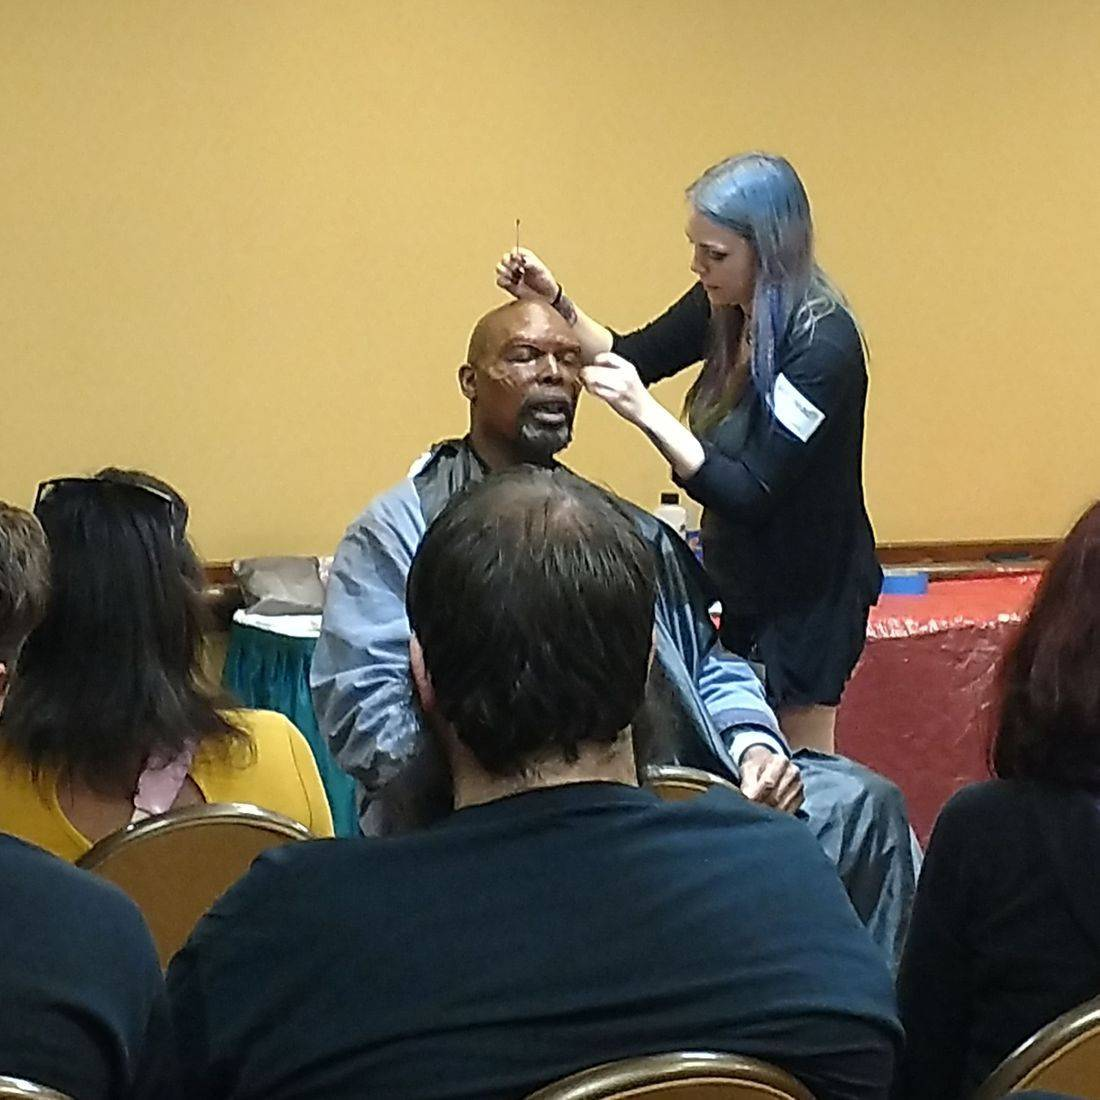 horror conventon panel class mua demo live